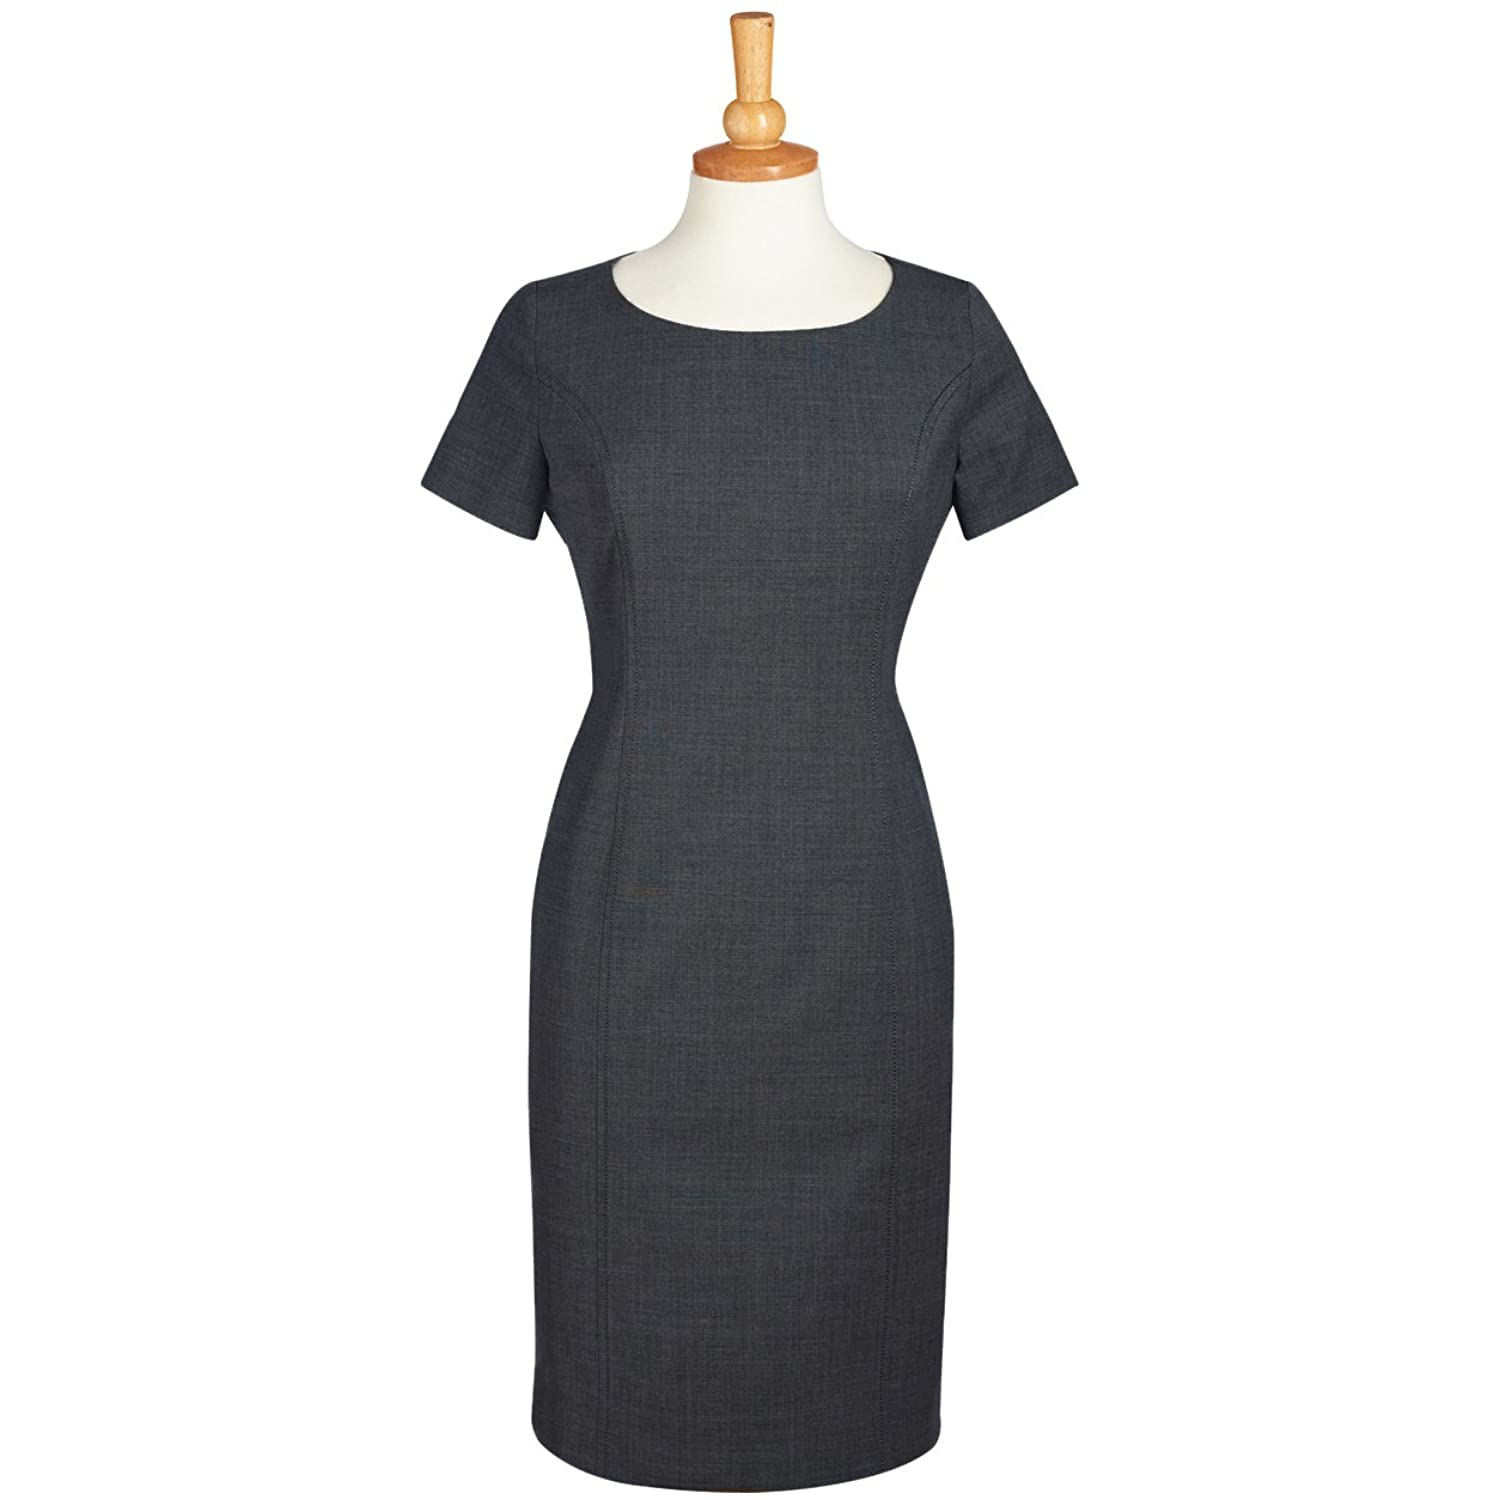 Women's Teramo dress (BR036)